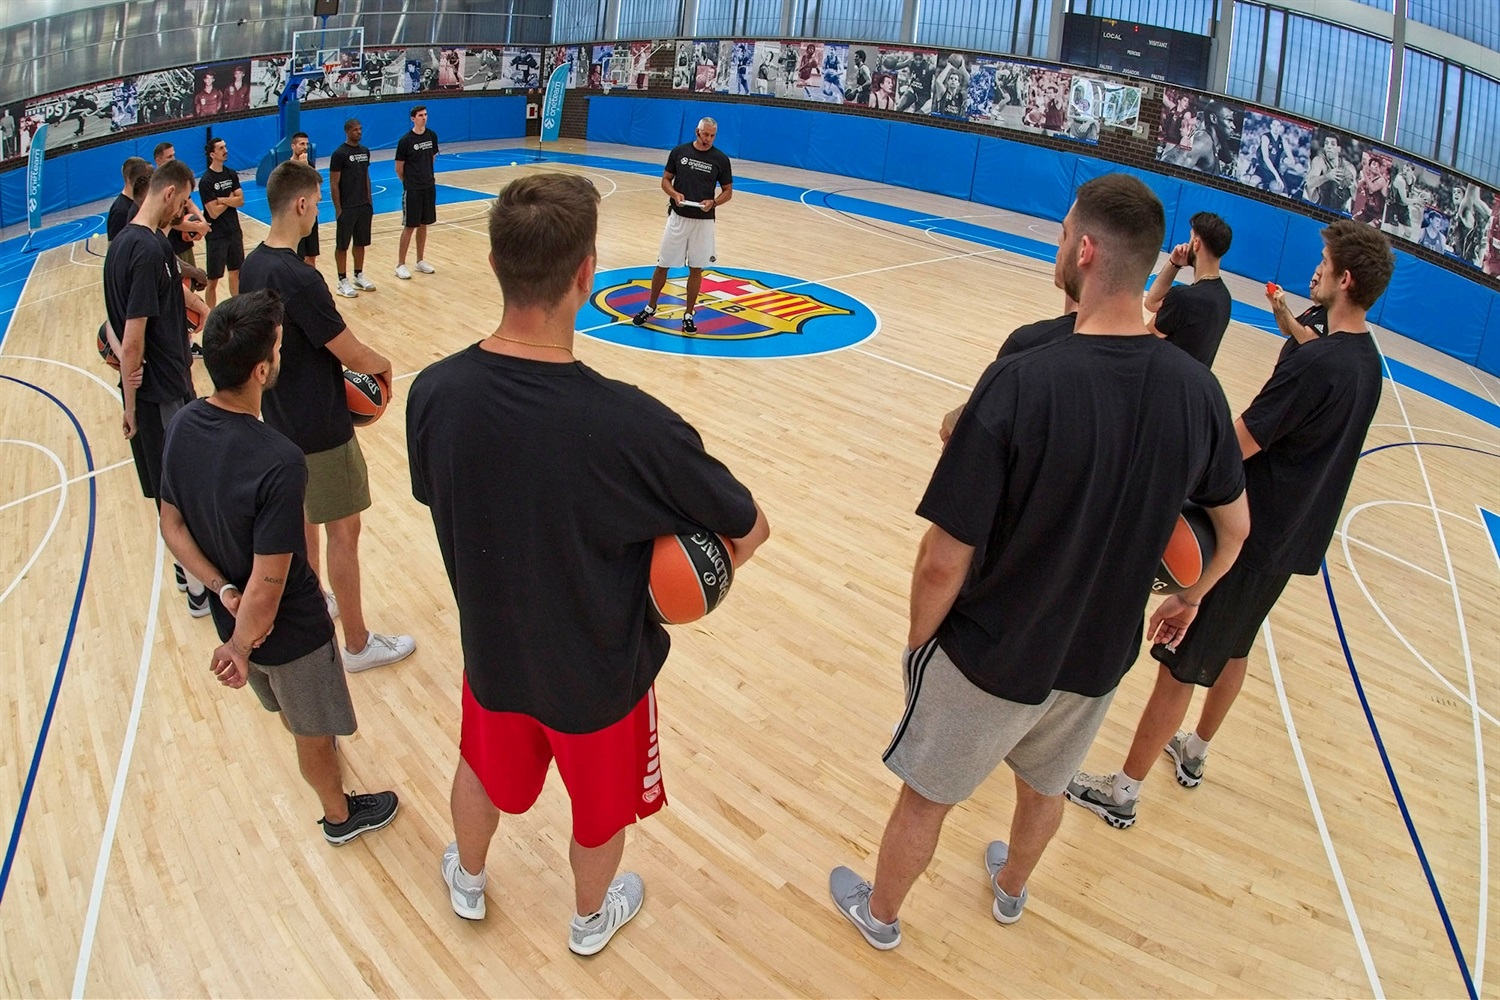 Euroleague players, One Team Session in Barcelona - EB19